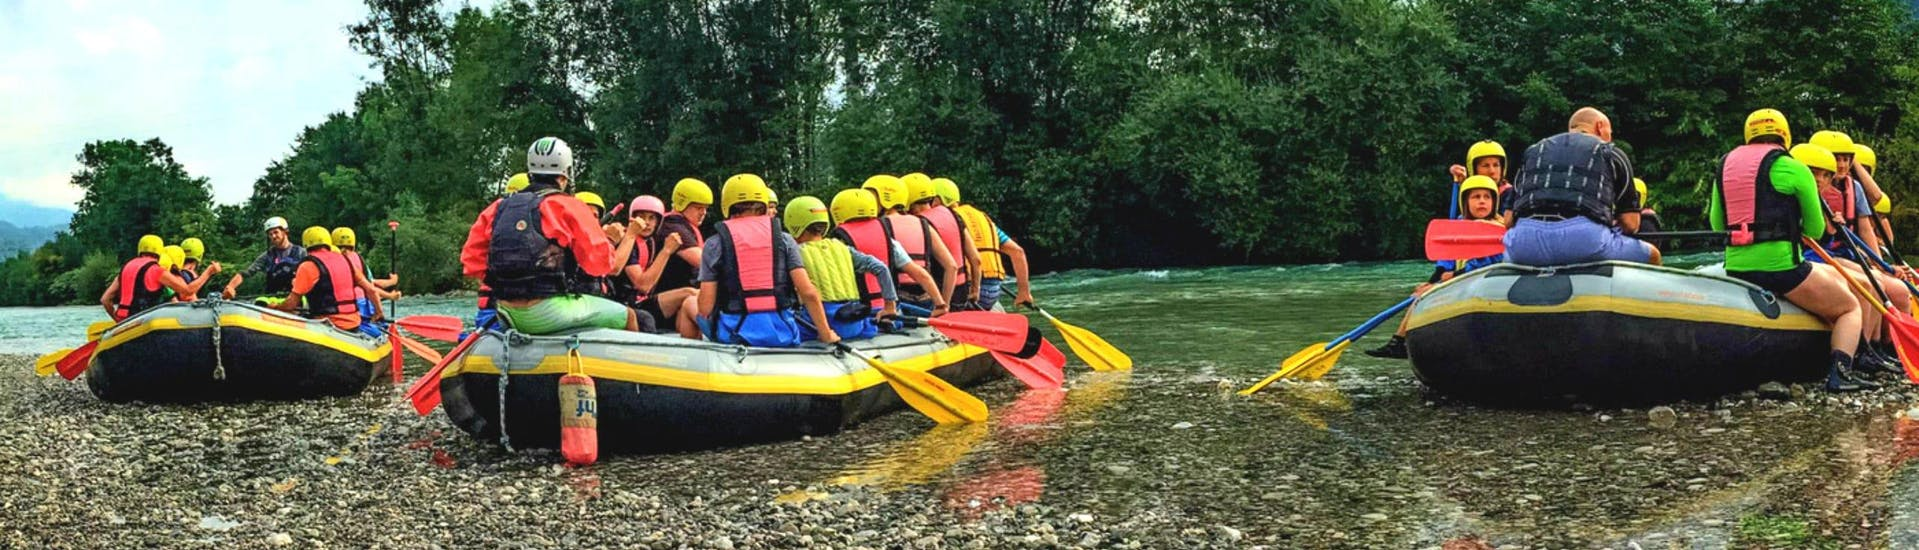 rafting-on-the-loisach-for-families-wildwasser-werdenfels-hero